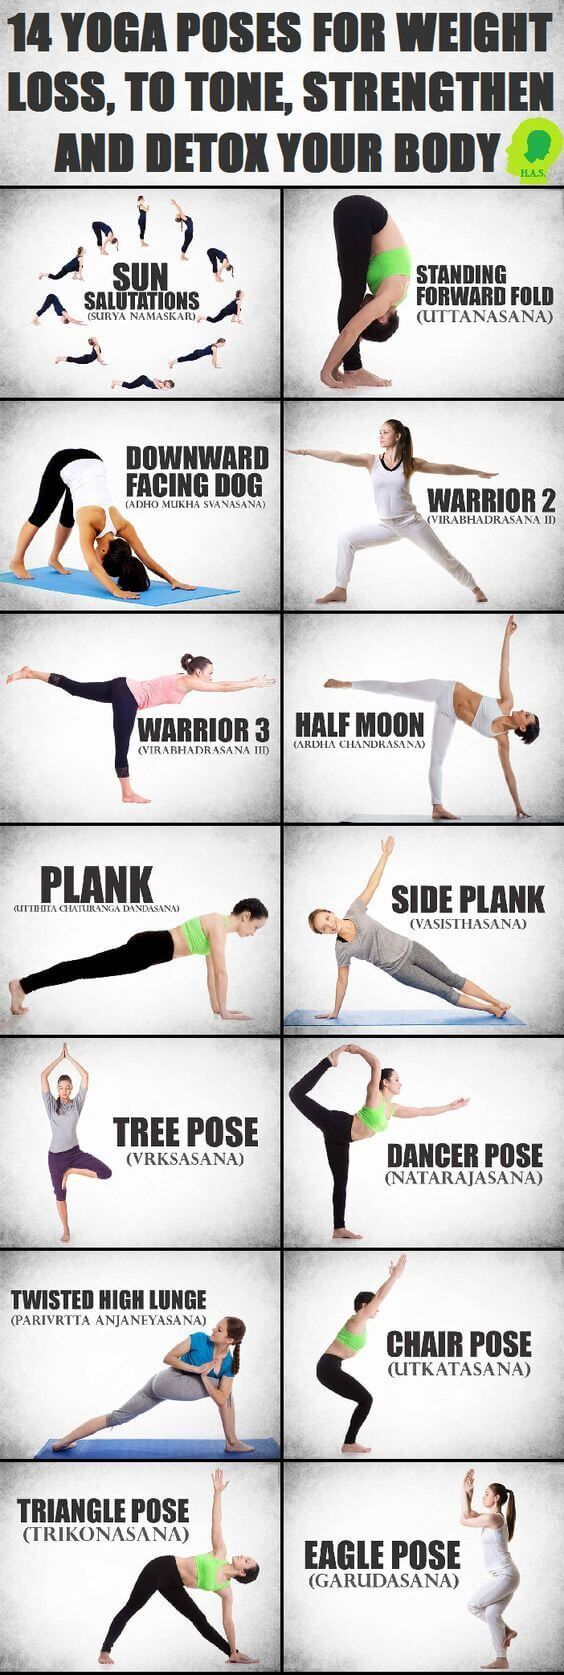 14 Yoga Poses for Weight Loss, To Tone, Strengthen and Detox Your Body http://www.erodethefat.com/blog/yoga-burn/